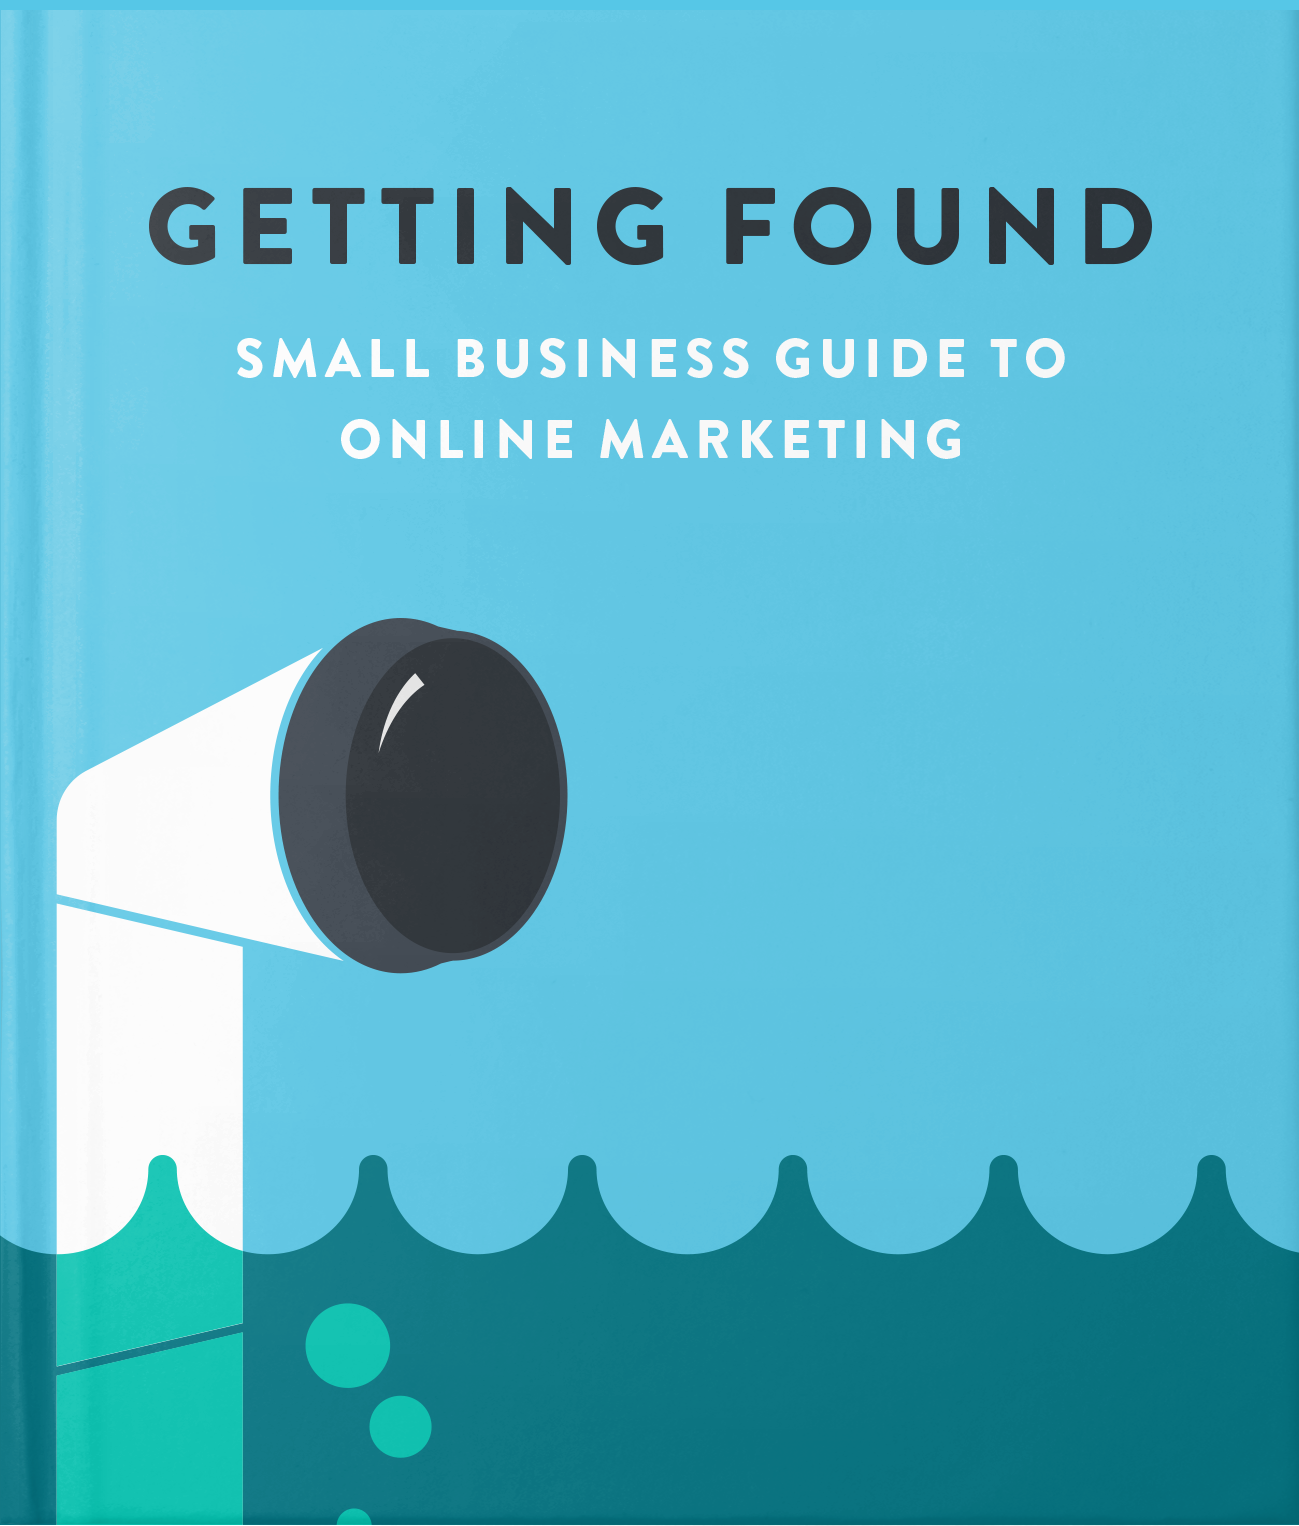 online-marketing-guide-book-cover